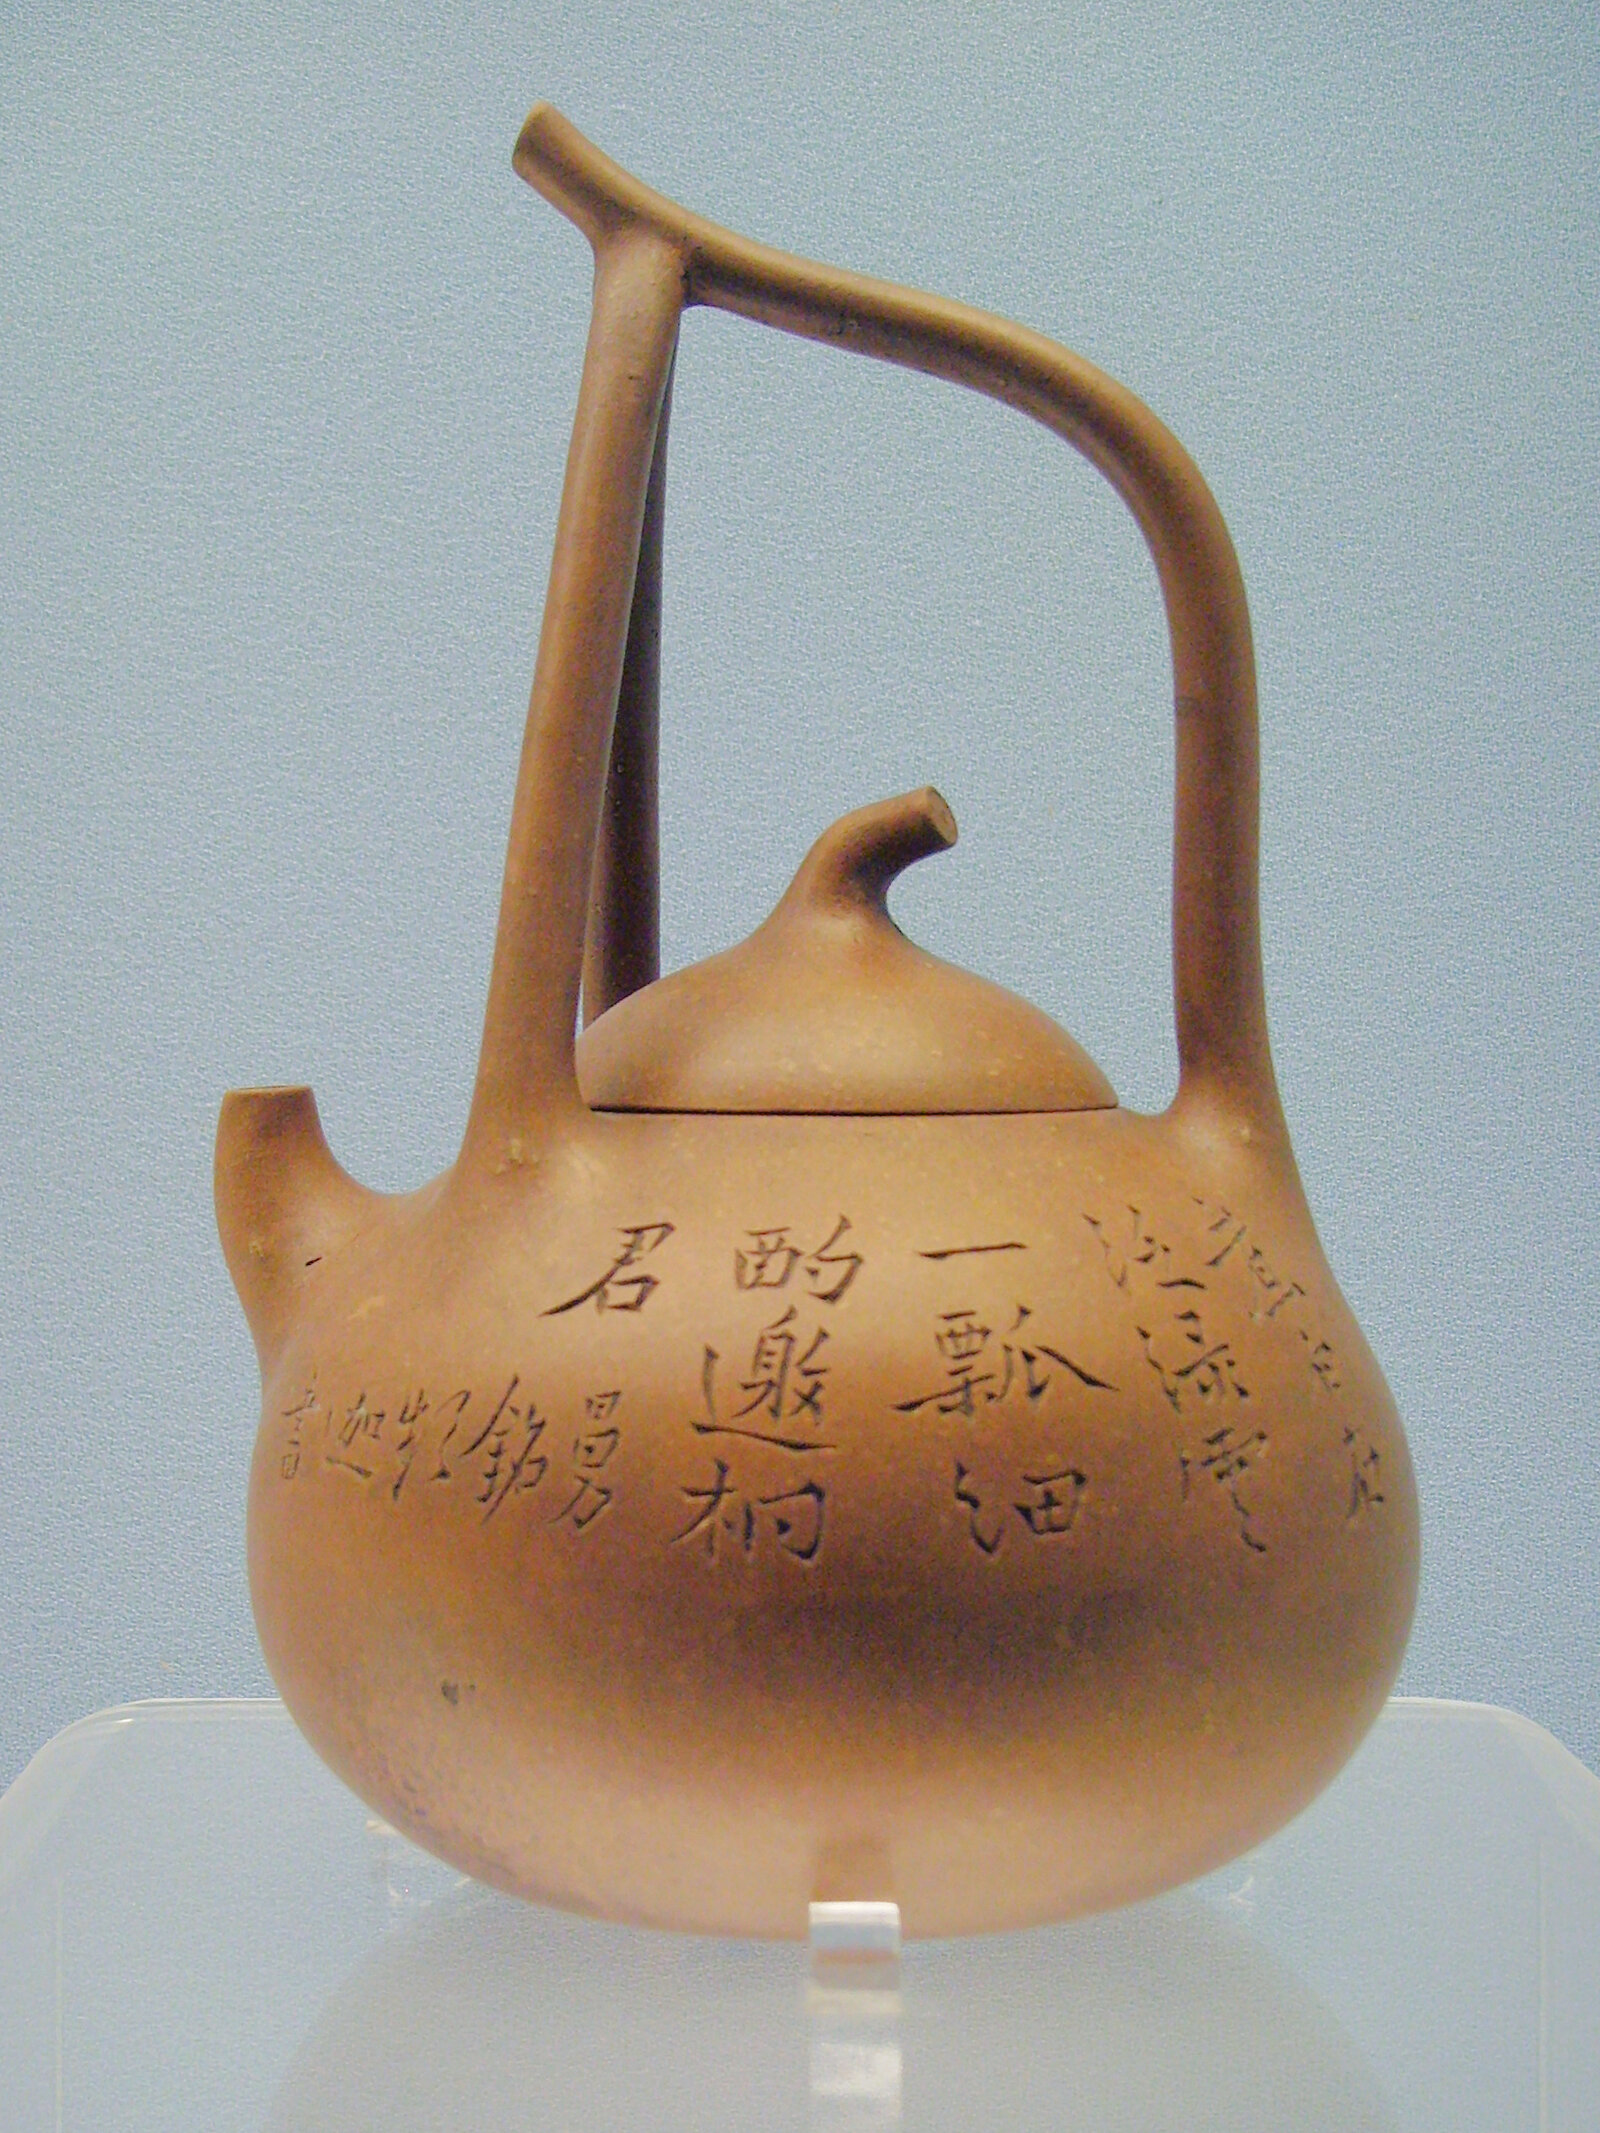 A Yi-Xing teapot made circa 1900. The first teapots came from the Yi-Xing region of China. Japanese potters moved the handle from the side to the top of the teapot, a style that later made its way back to China.